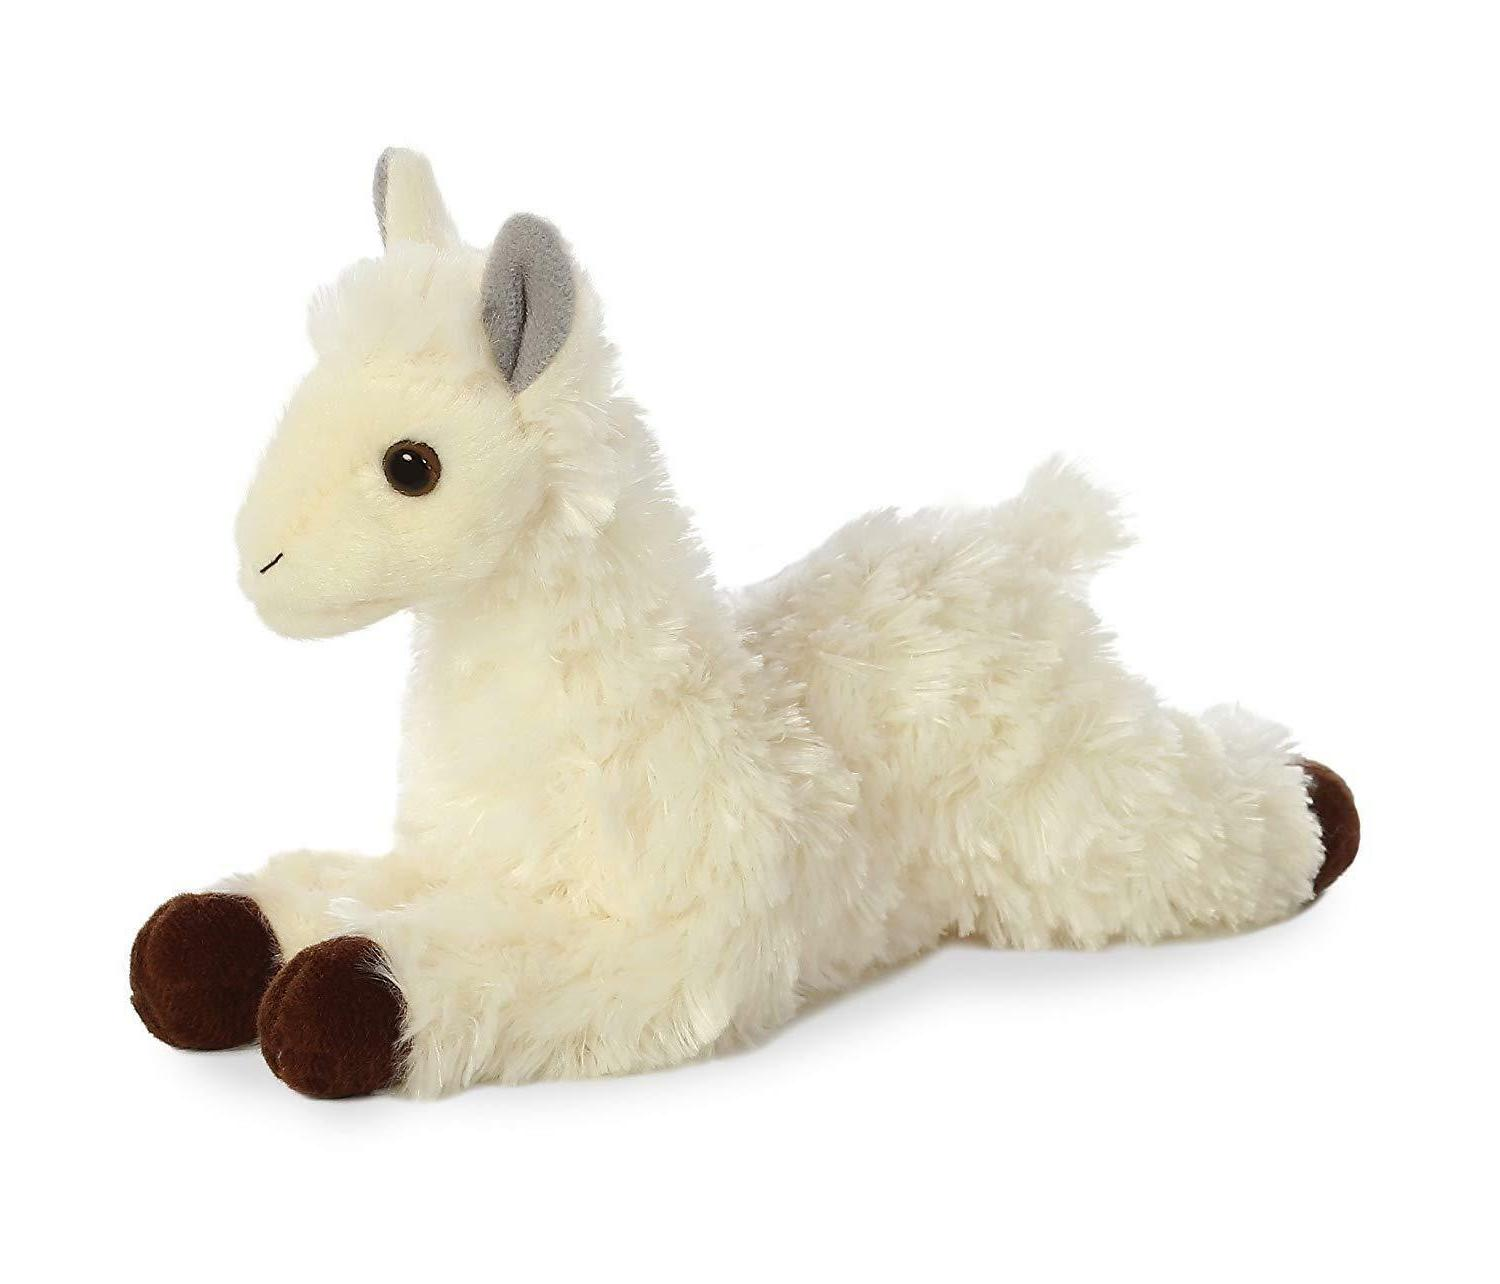 world mini flopsie white cream llama 8